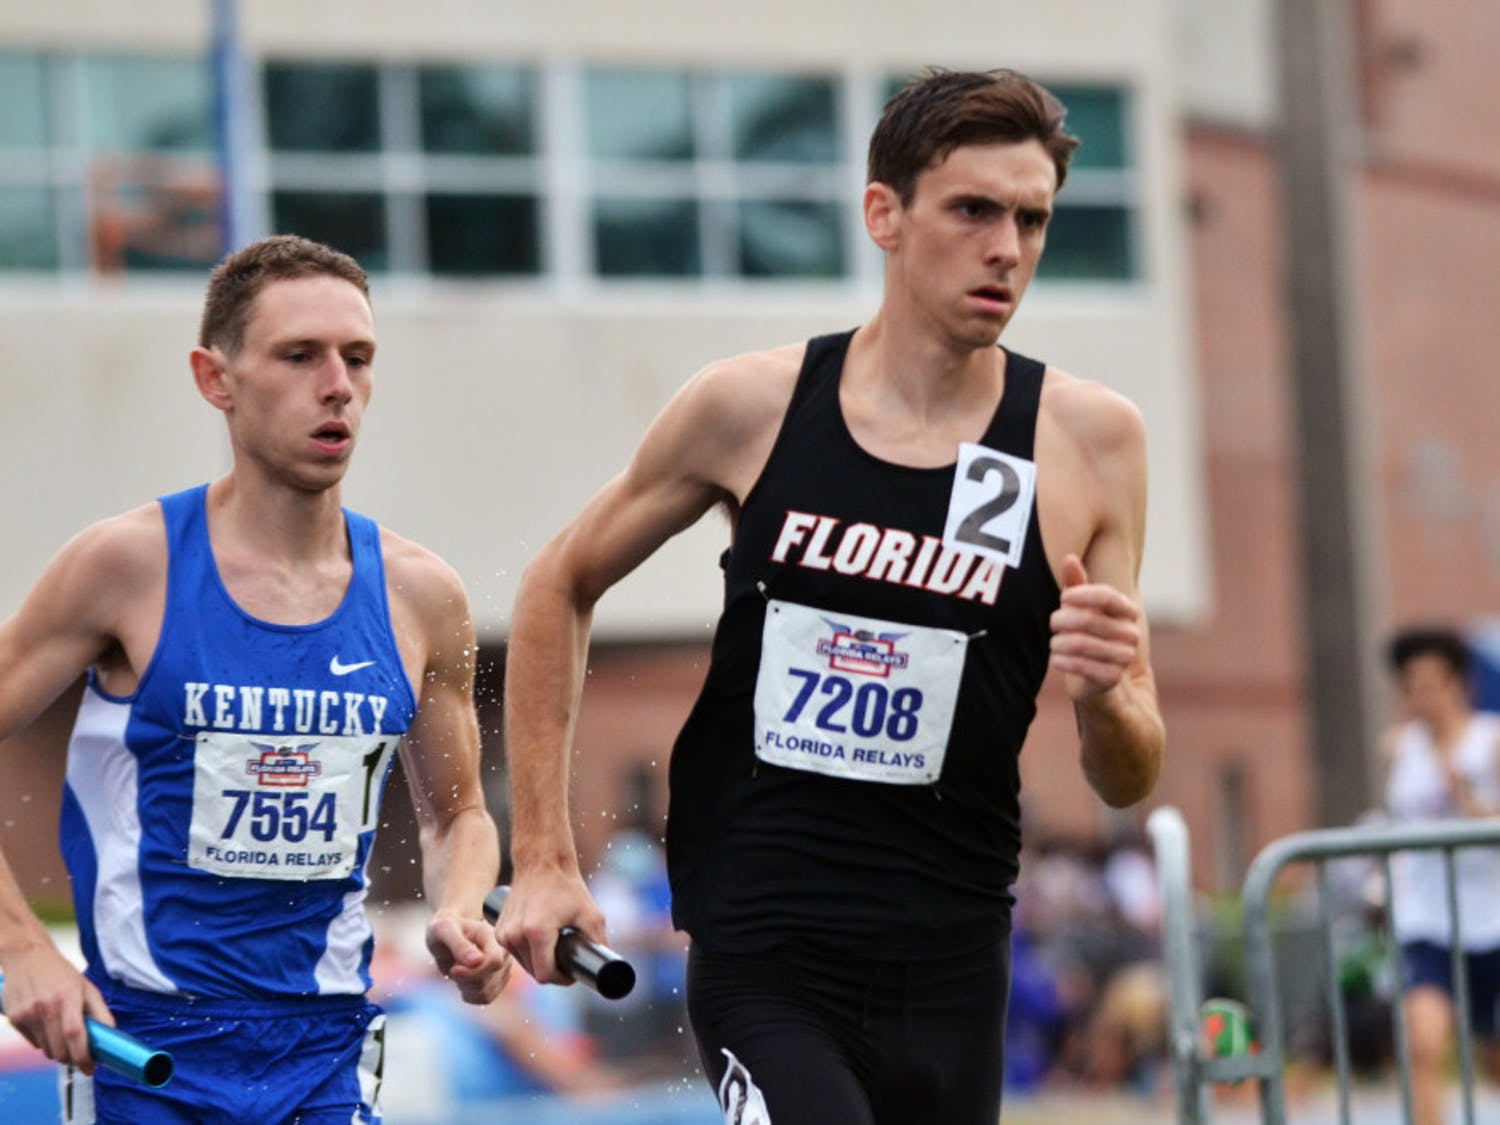 UF's Mark Parrish races in the final leg of the men's distance medley relay during the Florida Relays on May 4, 2015, at the Percy Beard Track in Gainesville.